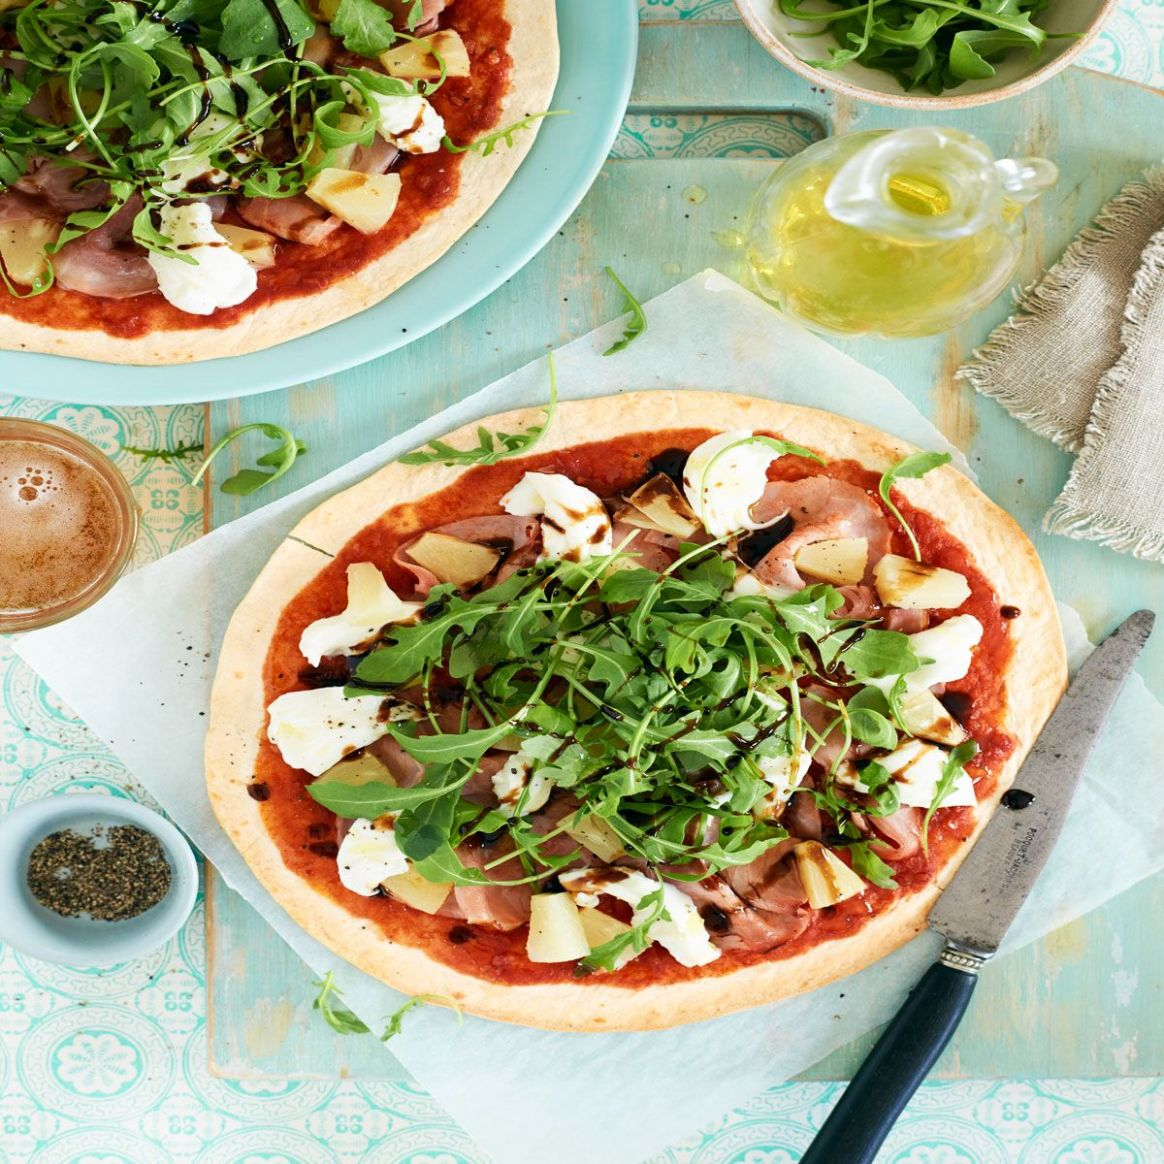 Skinny hawaiian pizzas - Summer Recipes Good Housekeeping